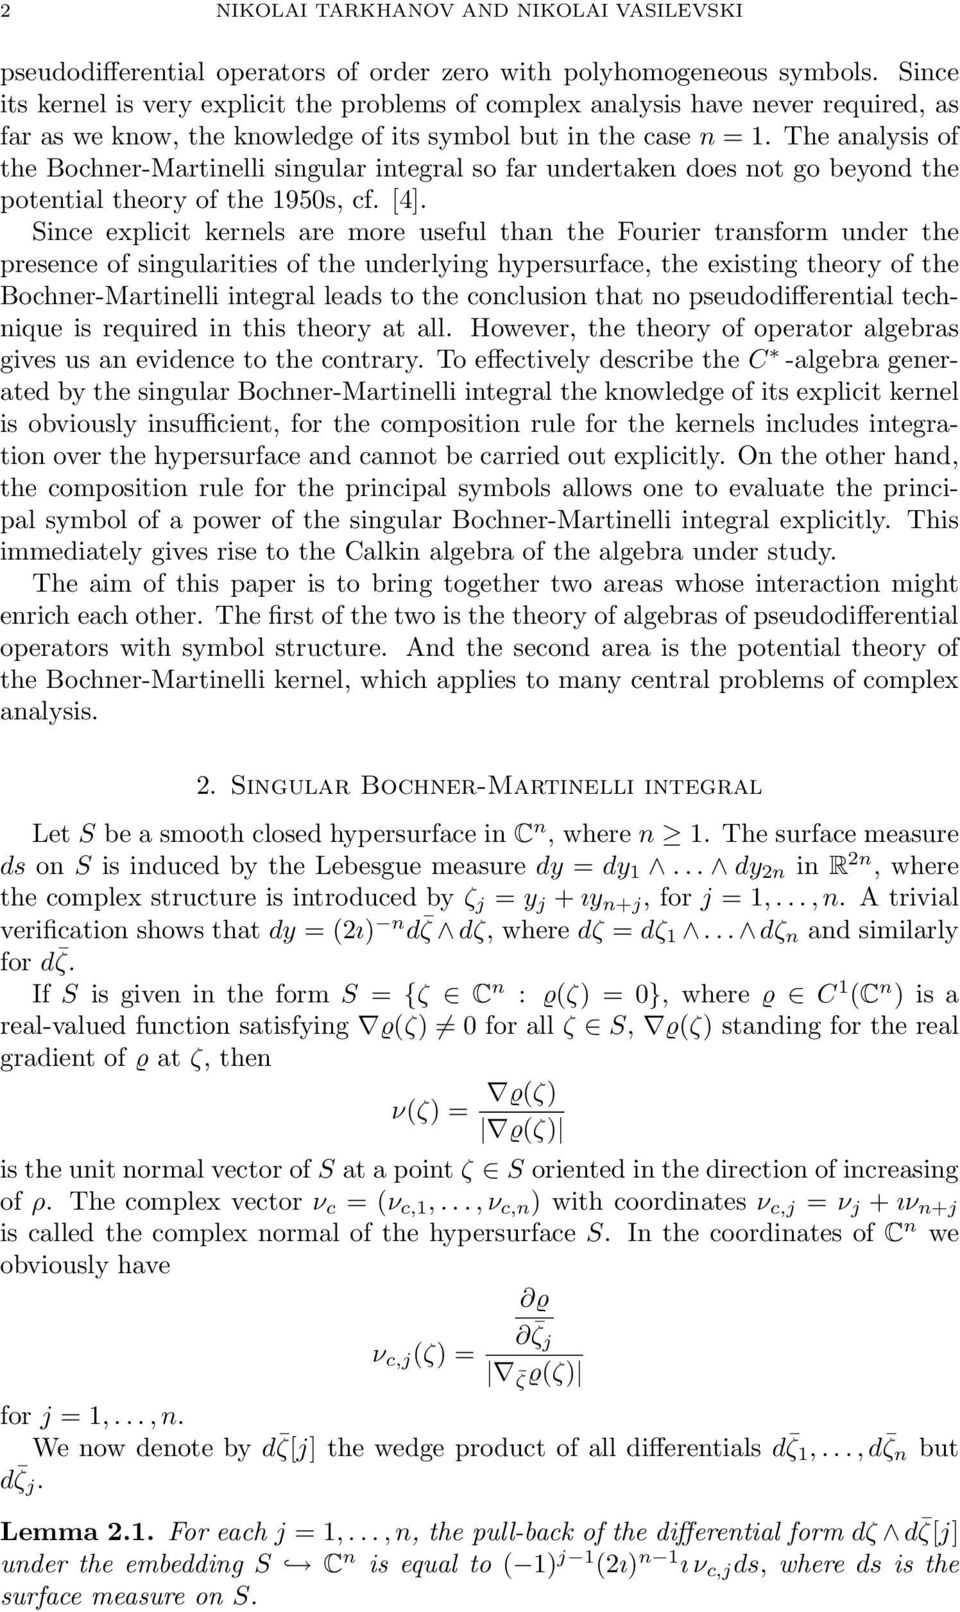 The analysis of the Bochner-Martinelli singular integral so far undertaken does not go beyond the potential theory of the 950s, cf. [4].